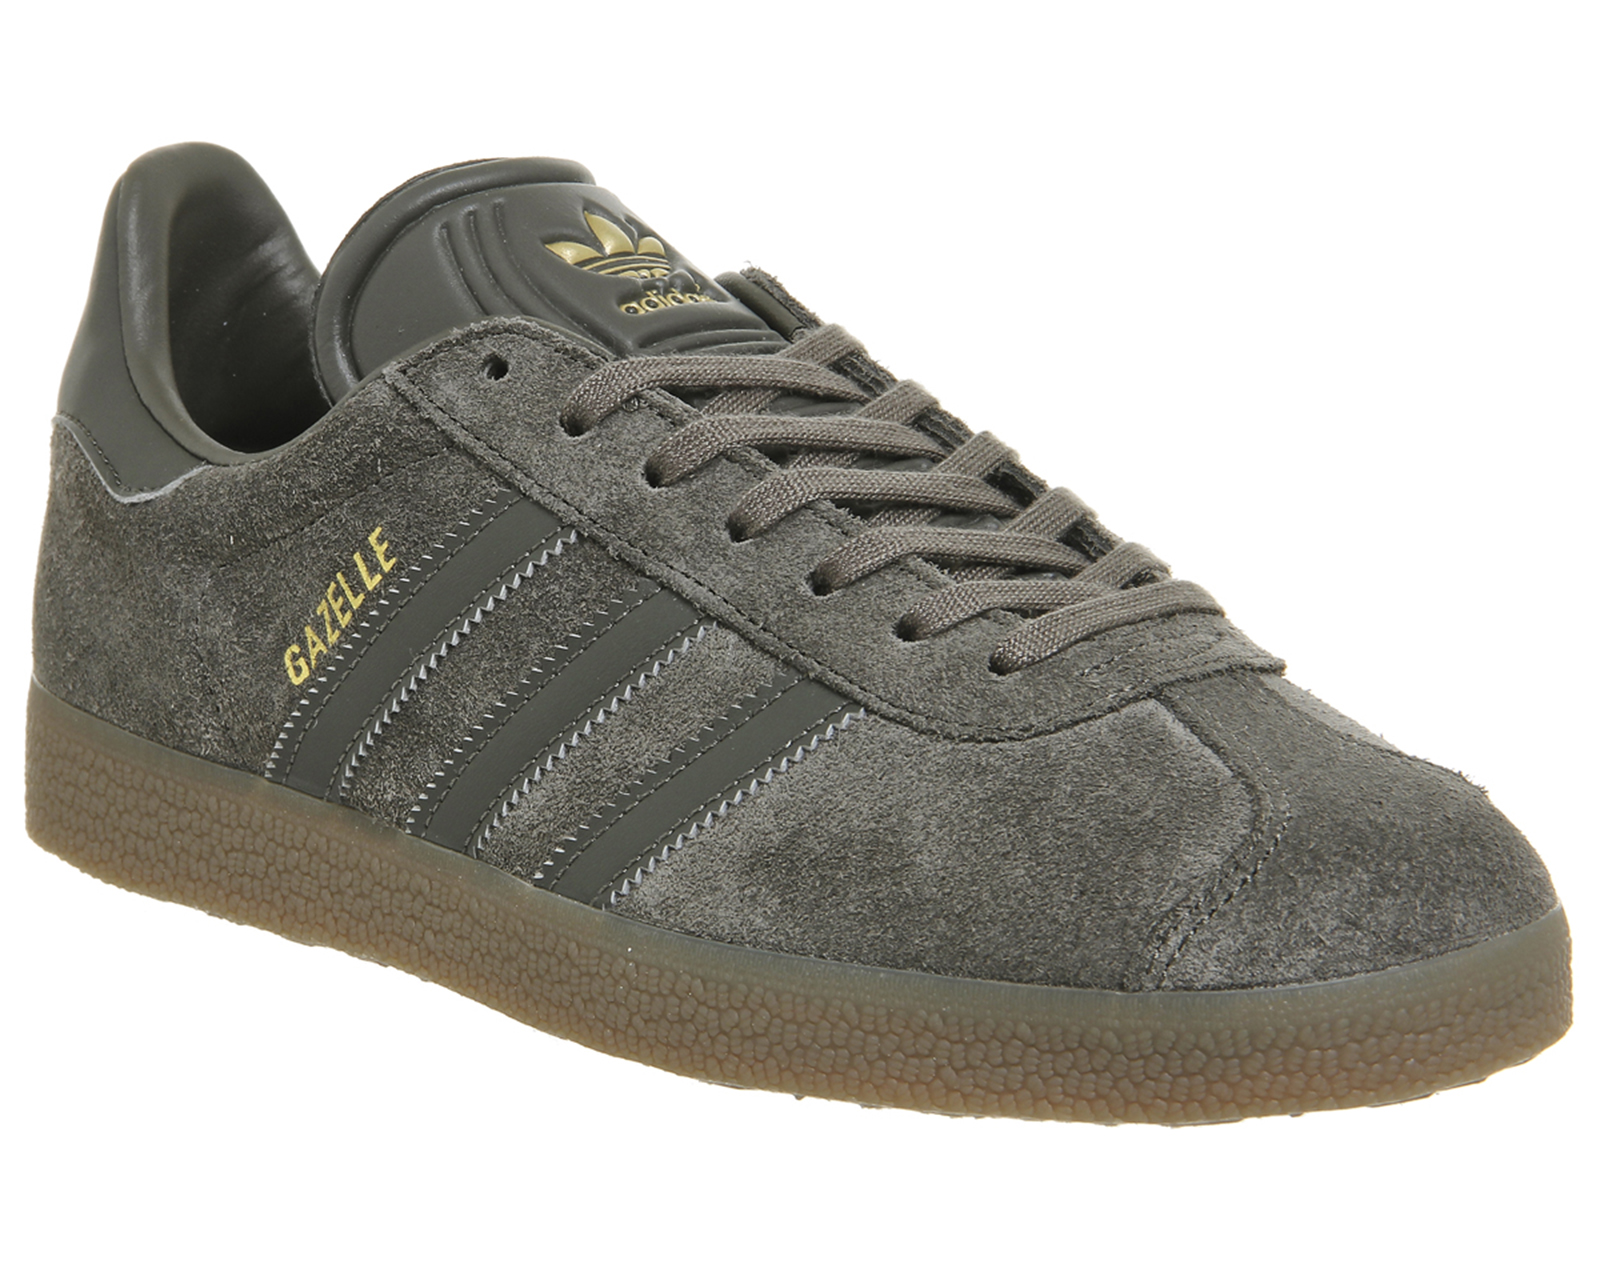 Adidas-Gazelle-UTILITY-GREY-GUM-Trainers-Shoes